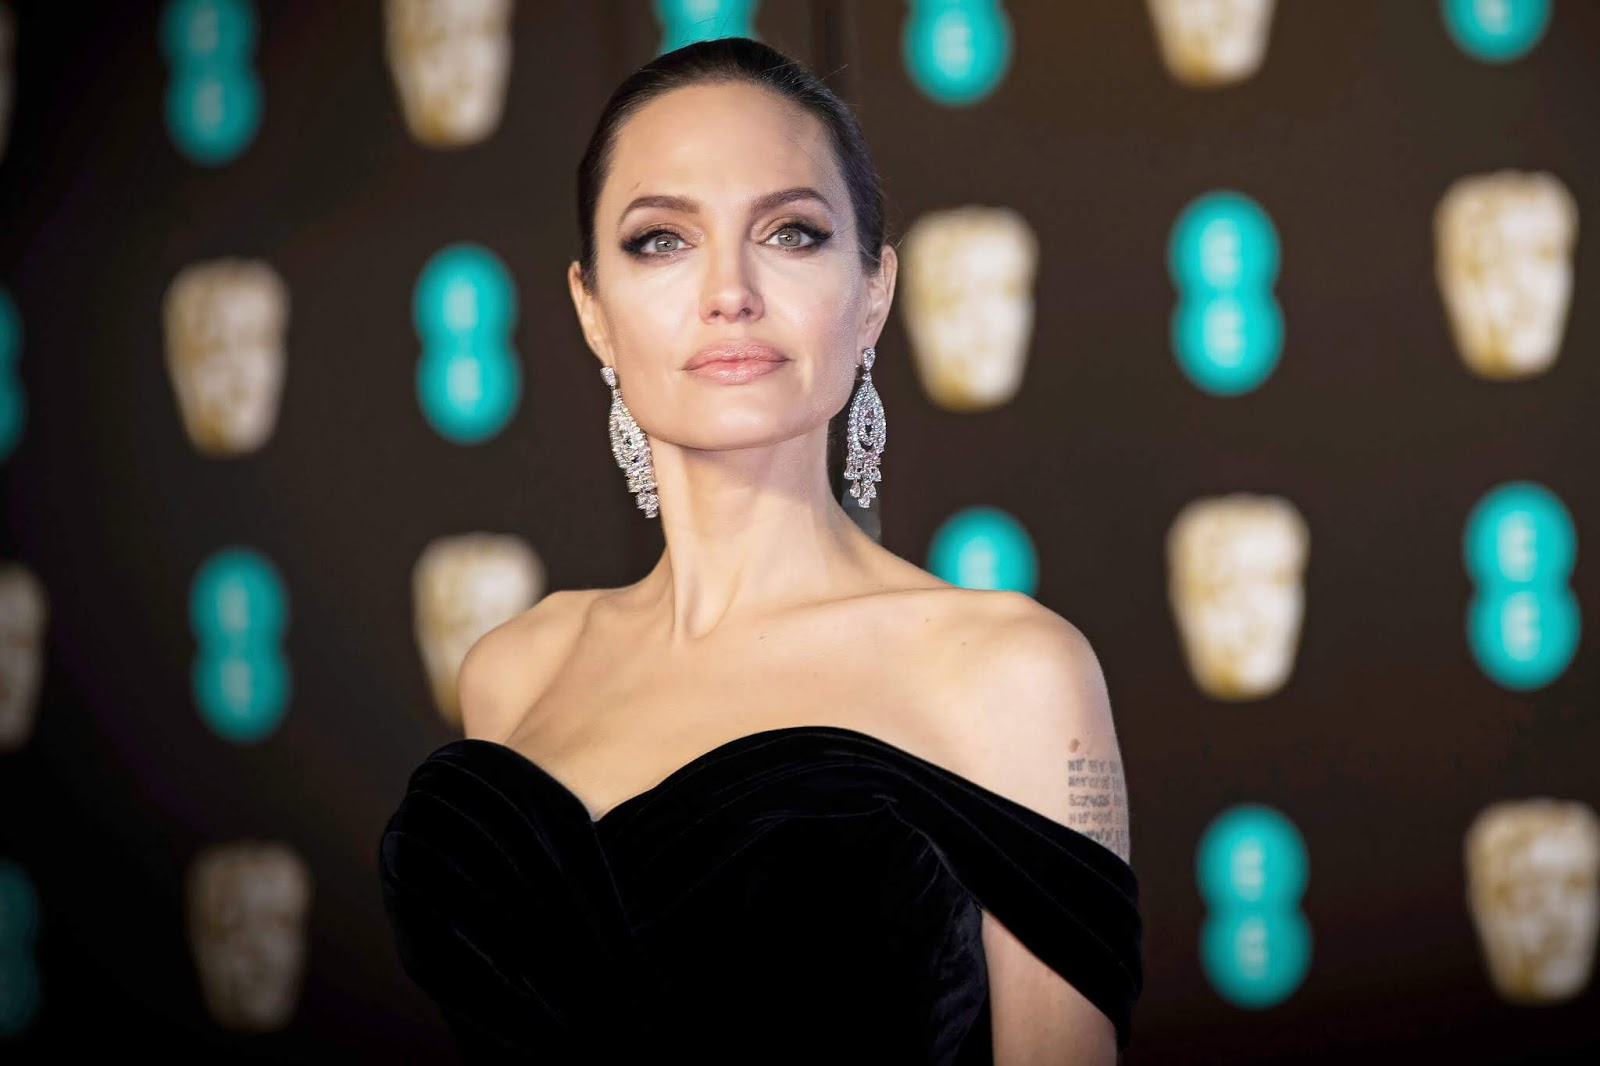 Angelina Jolie in talks to play godlike being in Marvel's The Eternals